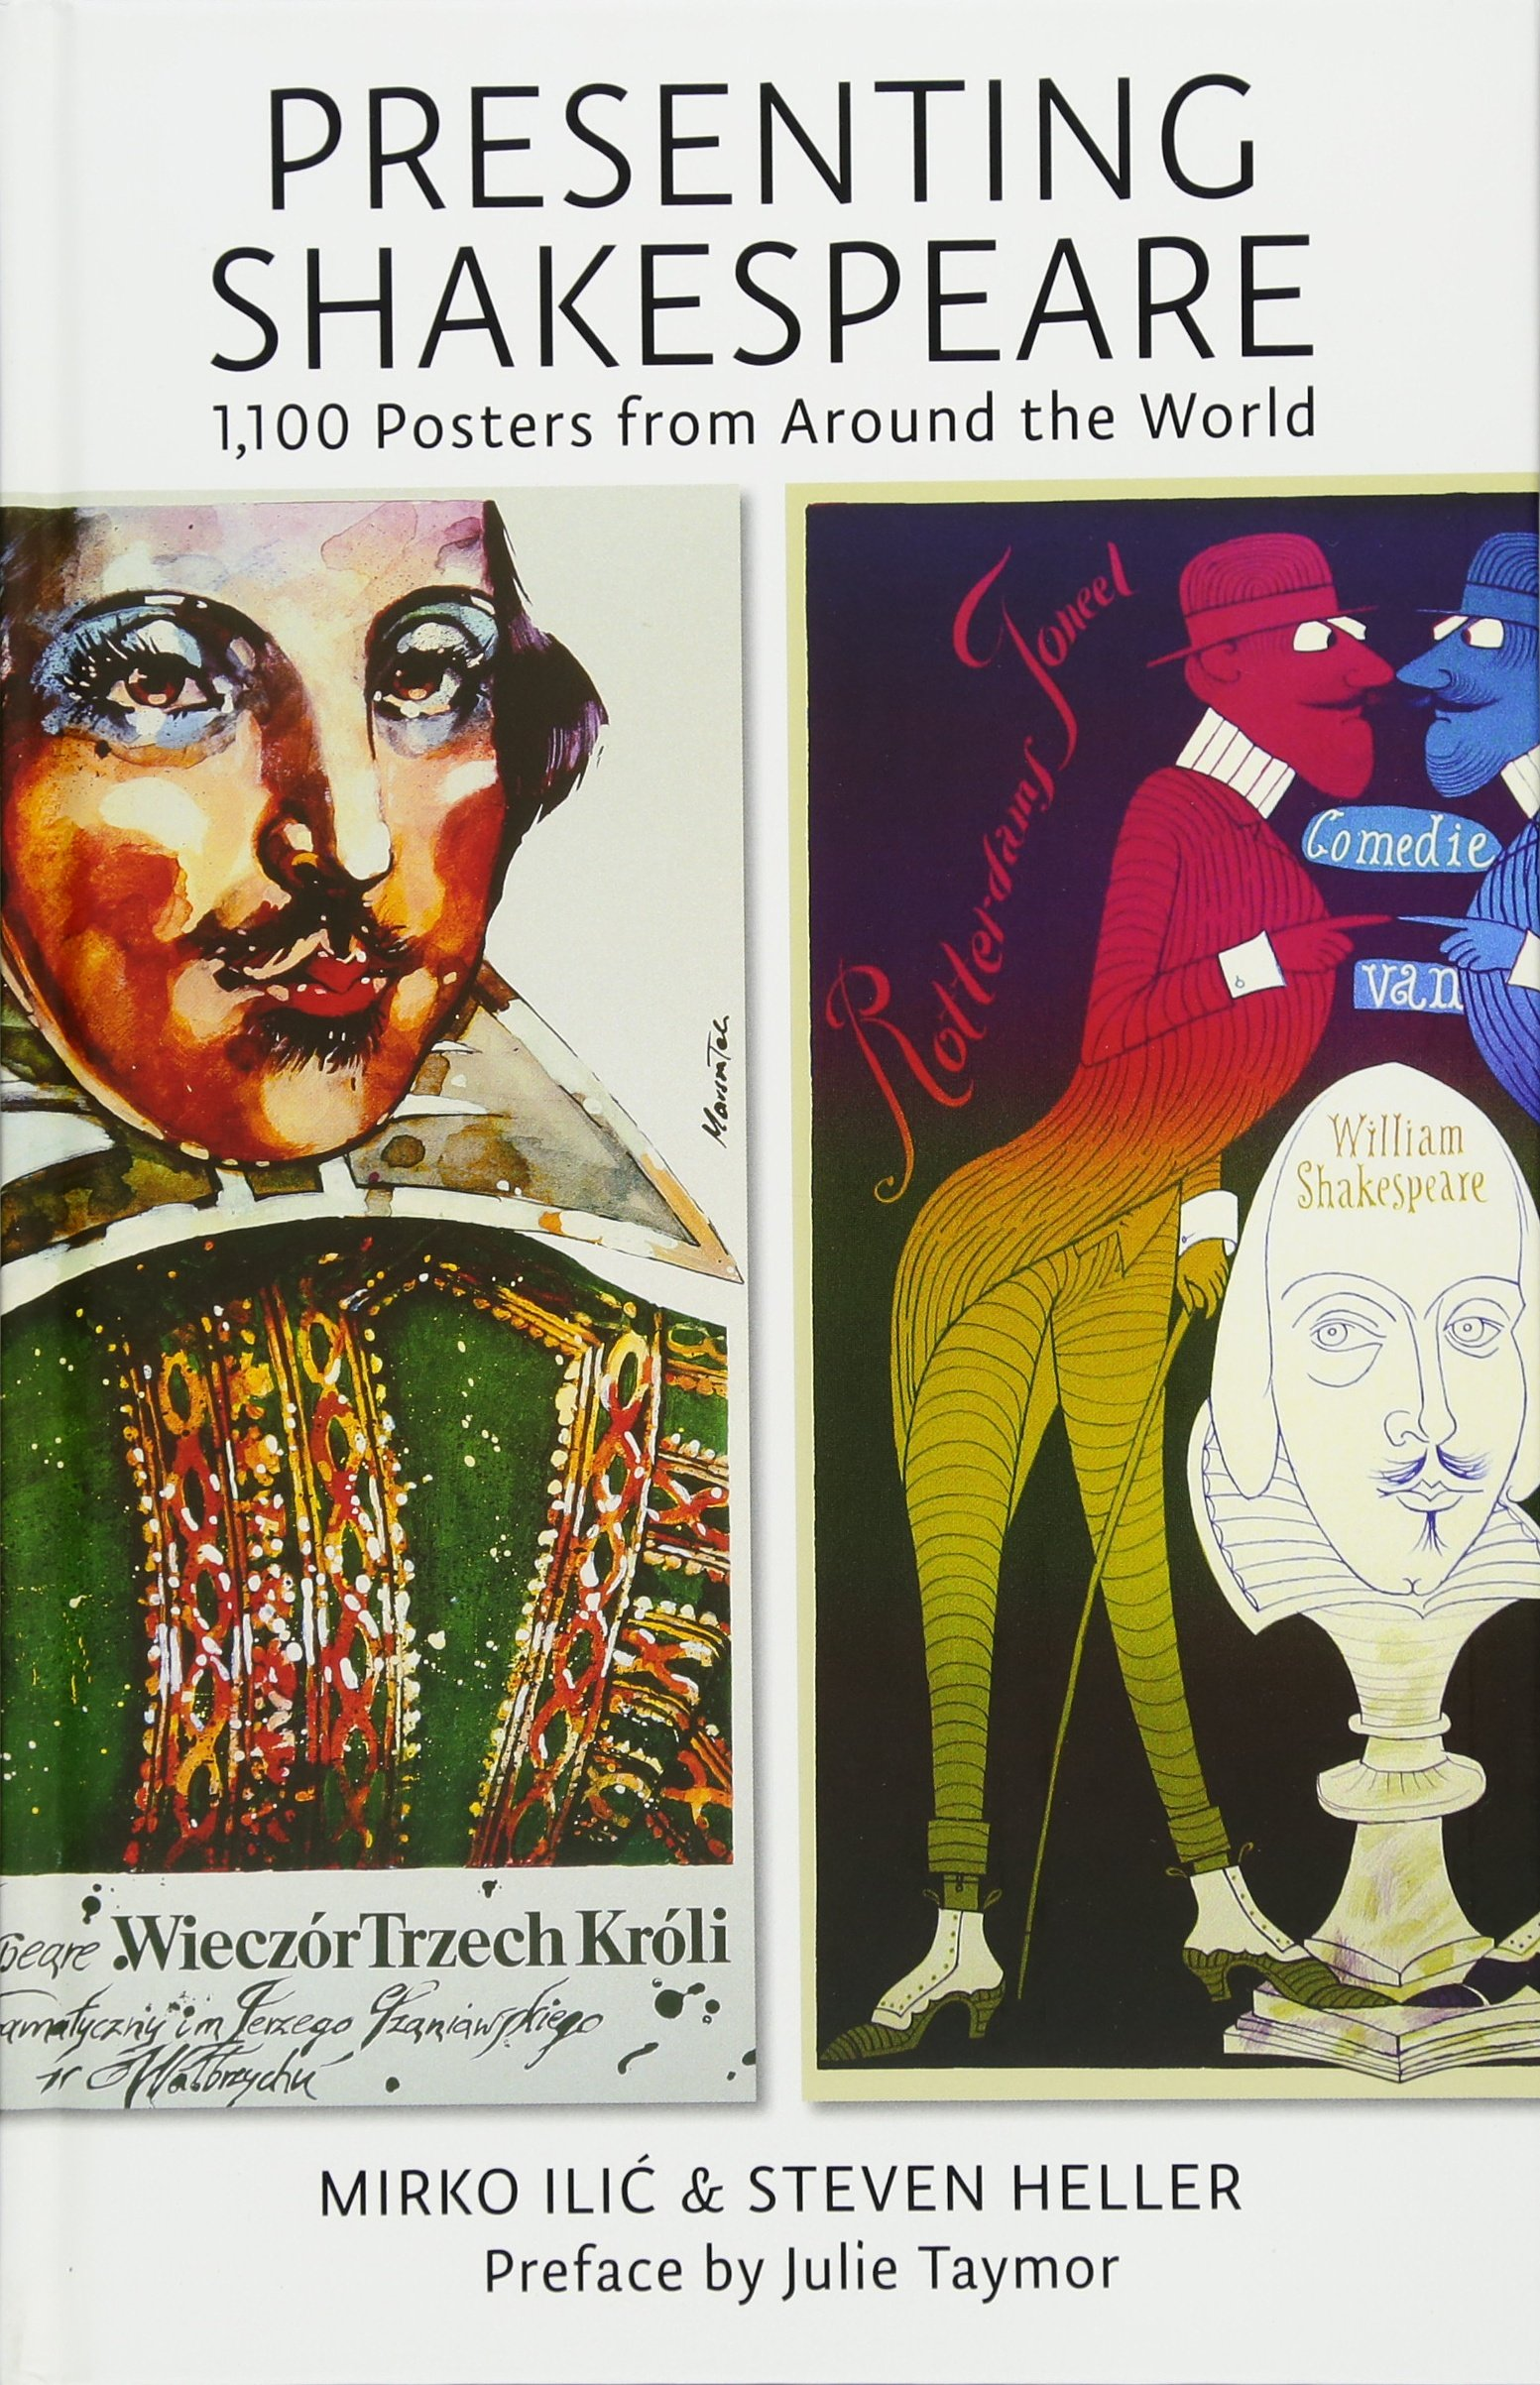 Presenting Shakespeare: 1,100 Posters from Around the World pdf